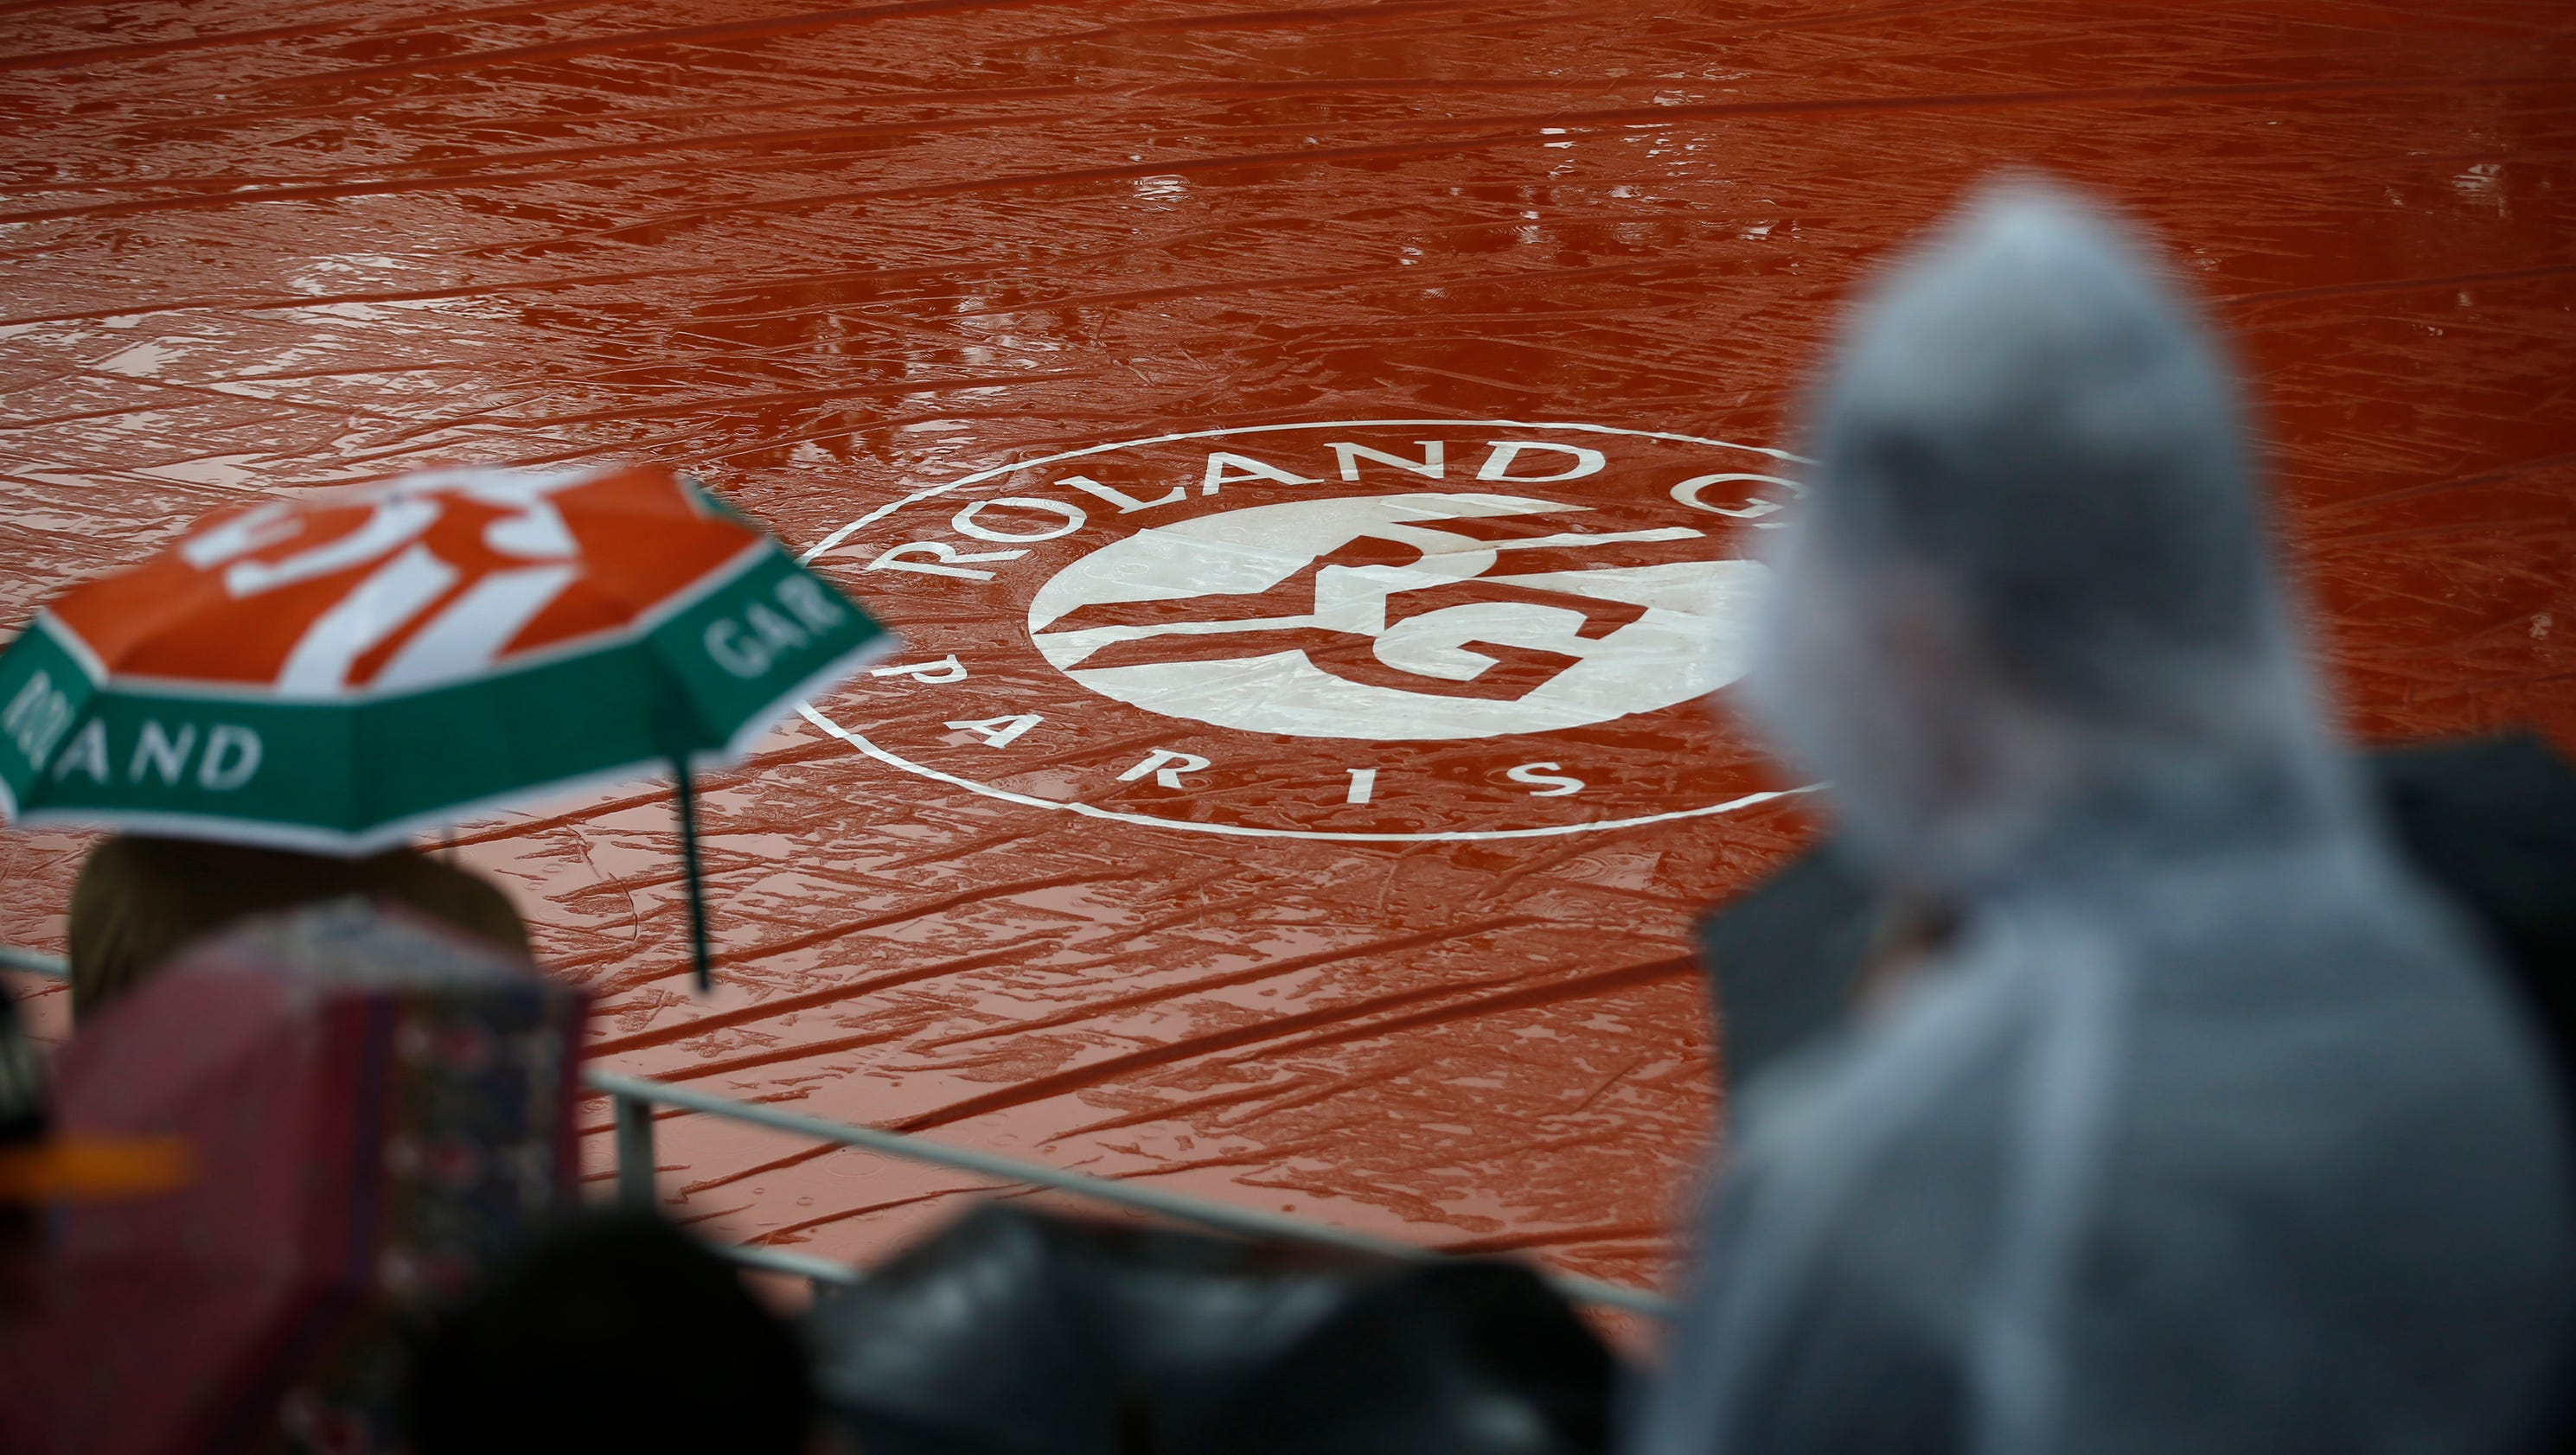 635995871044861054-ap-france-tennis-french-open-82095857